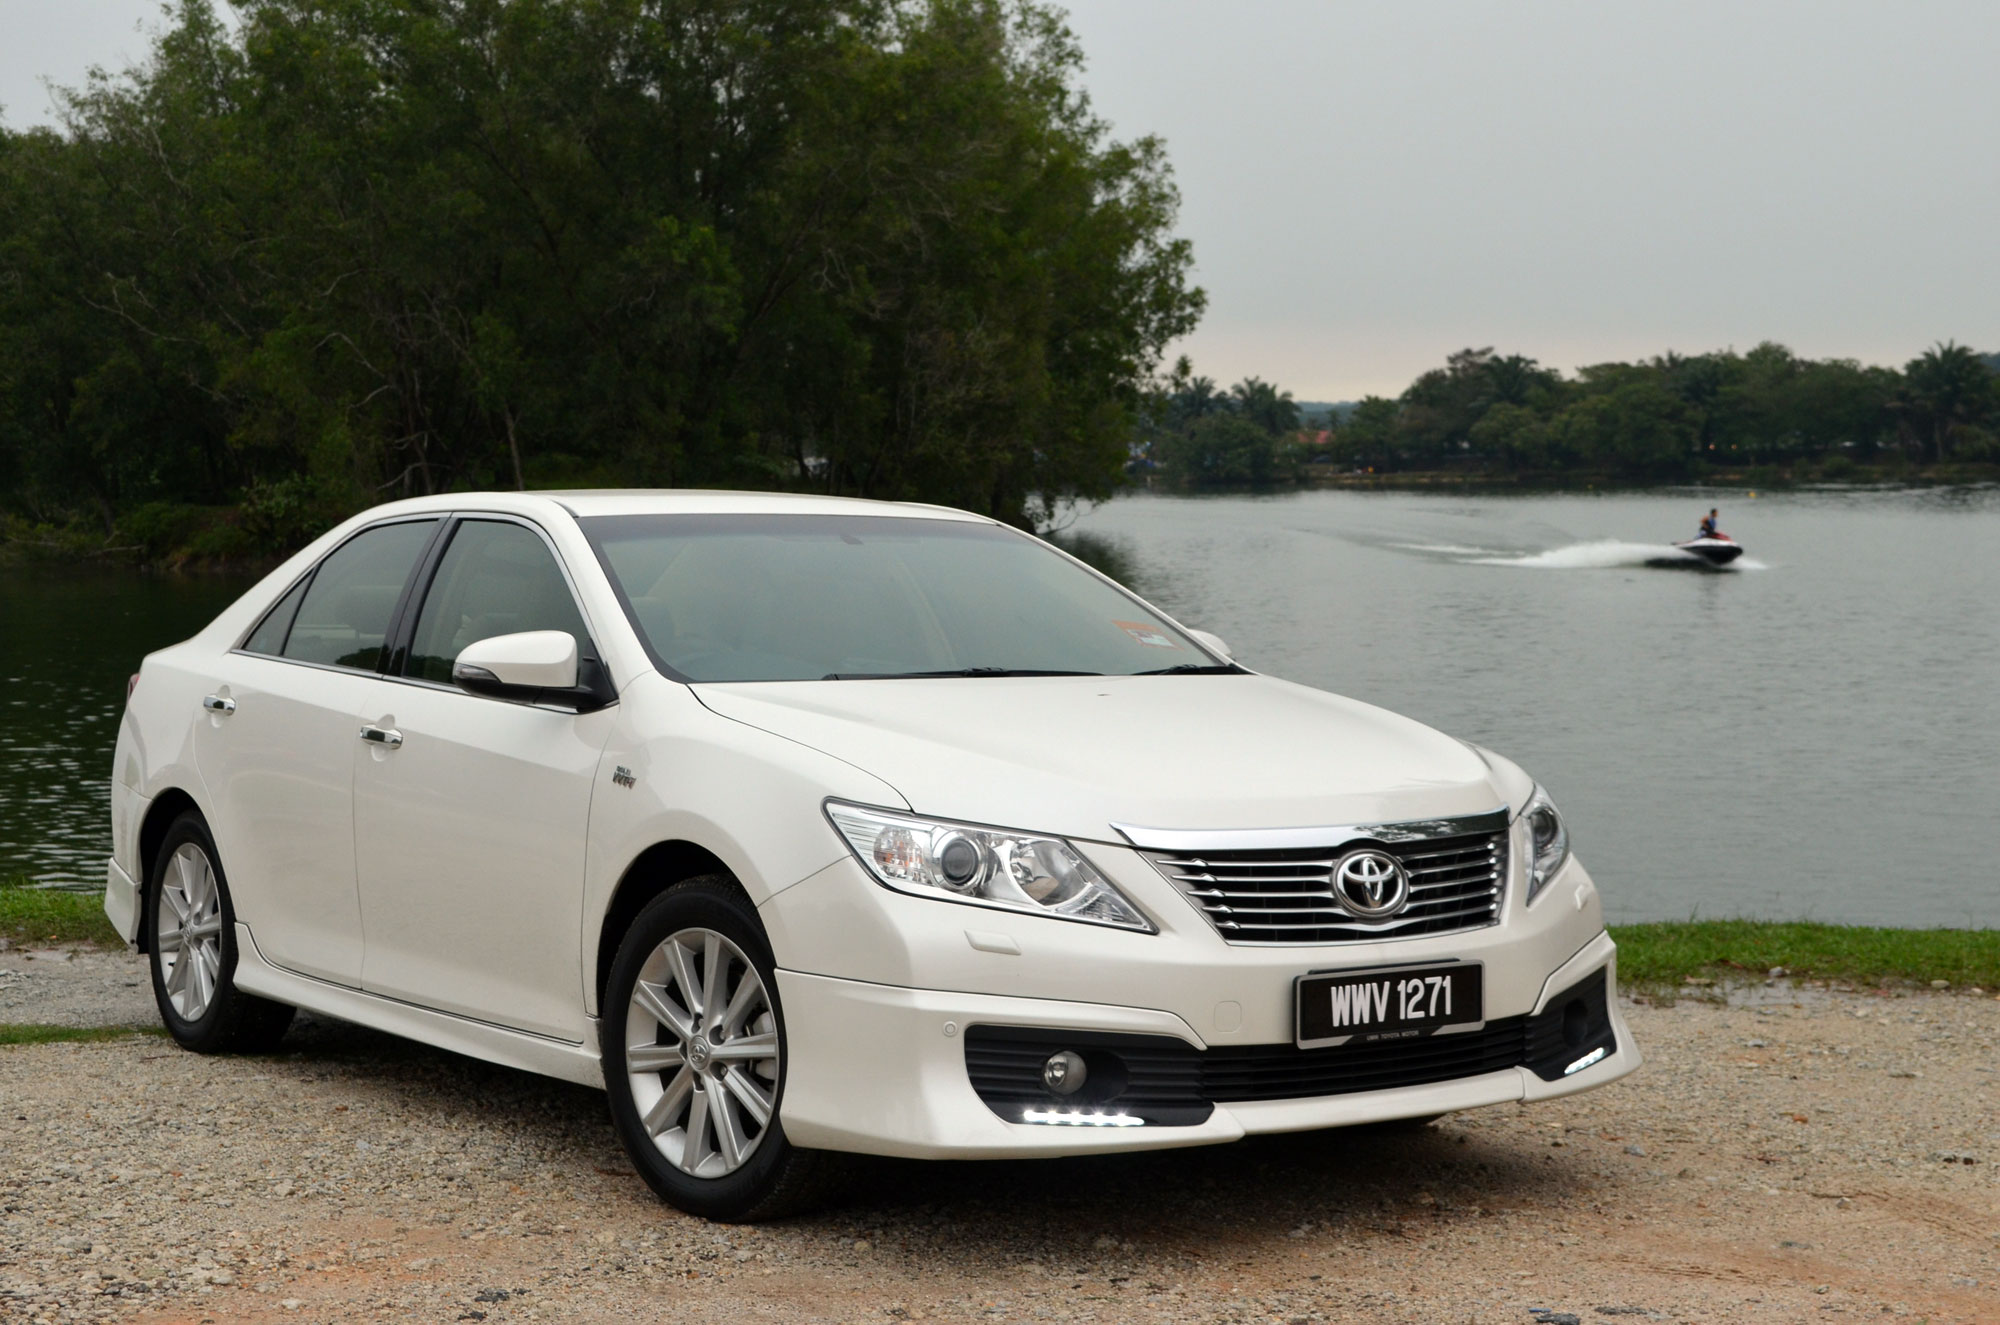 Toyota Camry 2012 >> DRIVEN: Toyota Camry 2.5V Test Drive Report Paul Tan - Image 135997